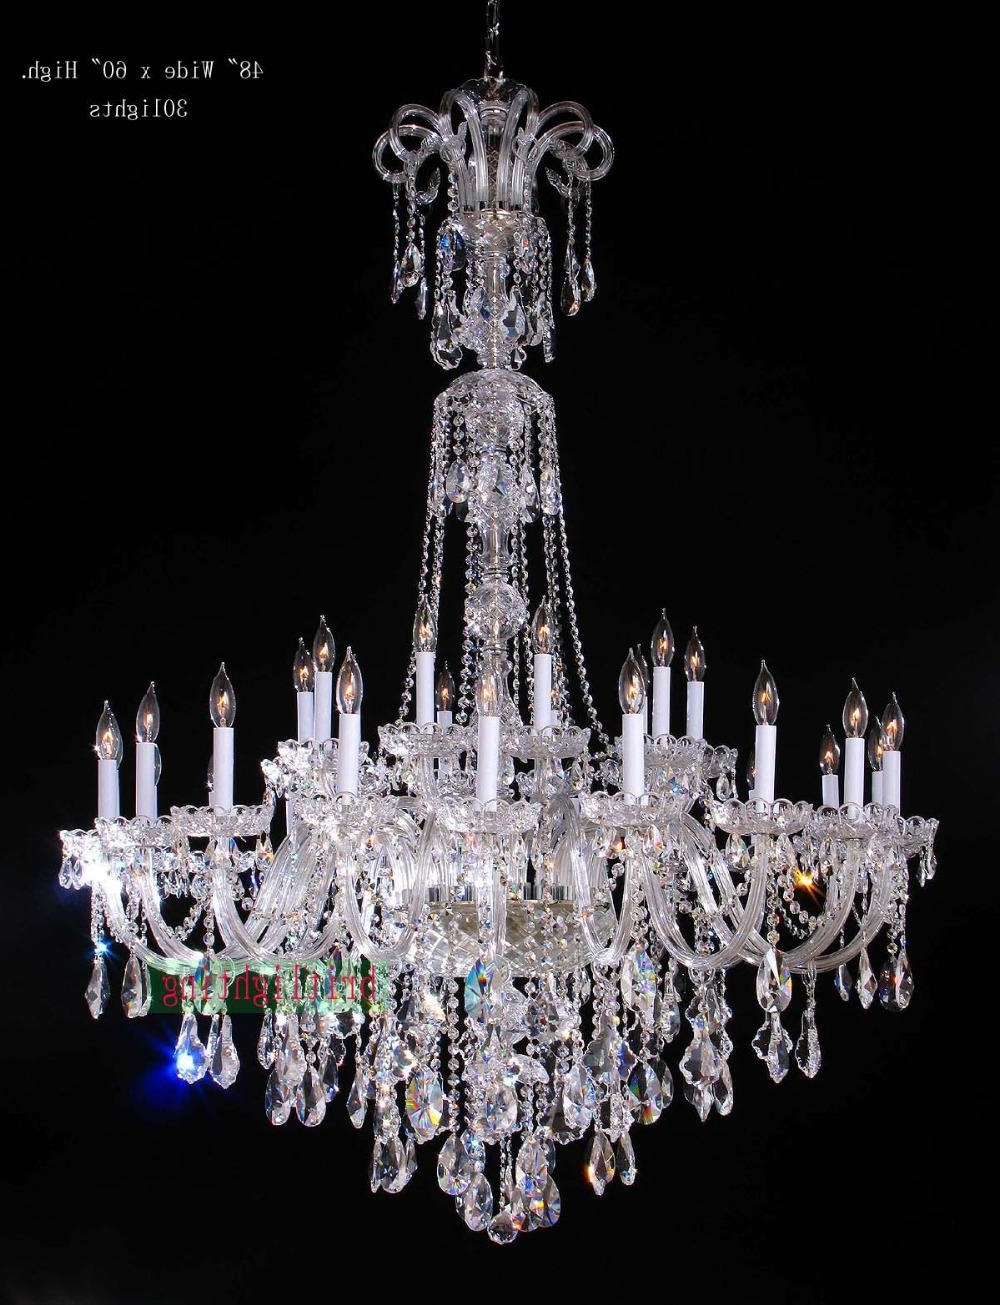 Best And Newest Big Crystal Chandelier In Lamp Modern Crystal Chandeliers 5 Star Hotel Chandelier Led Crystal (View 4 of 15)